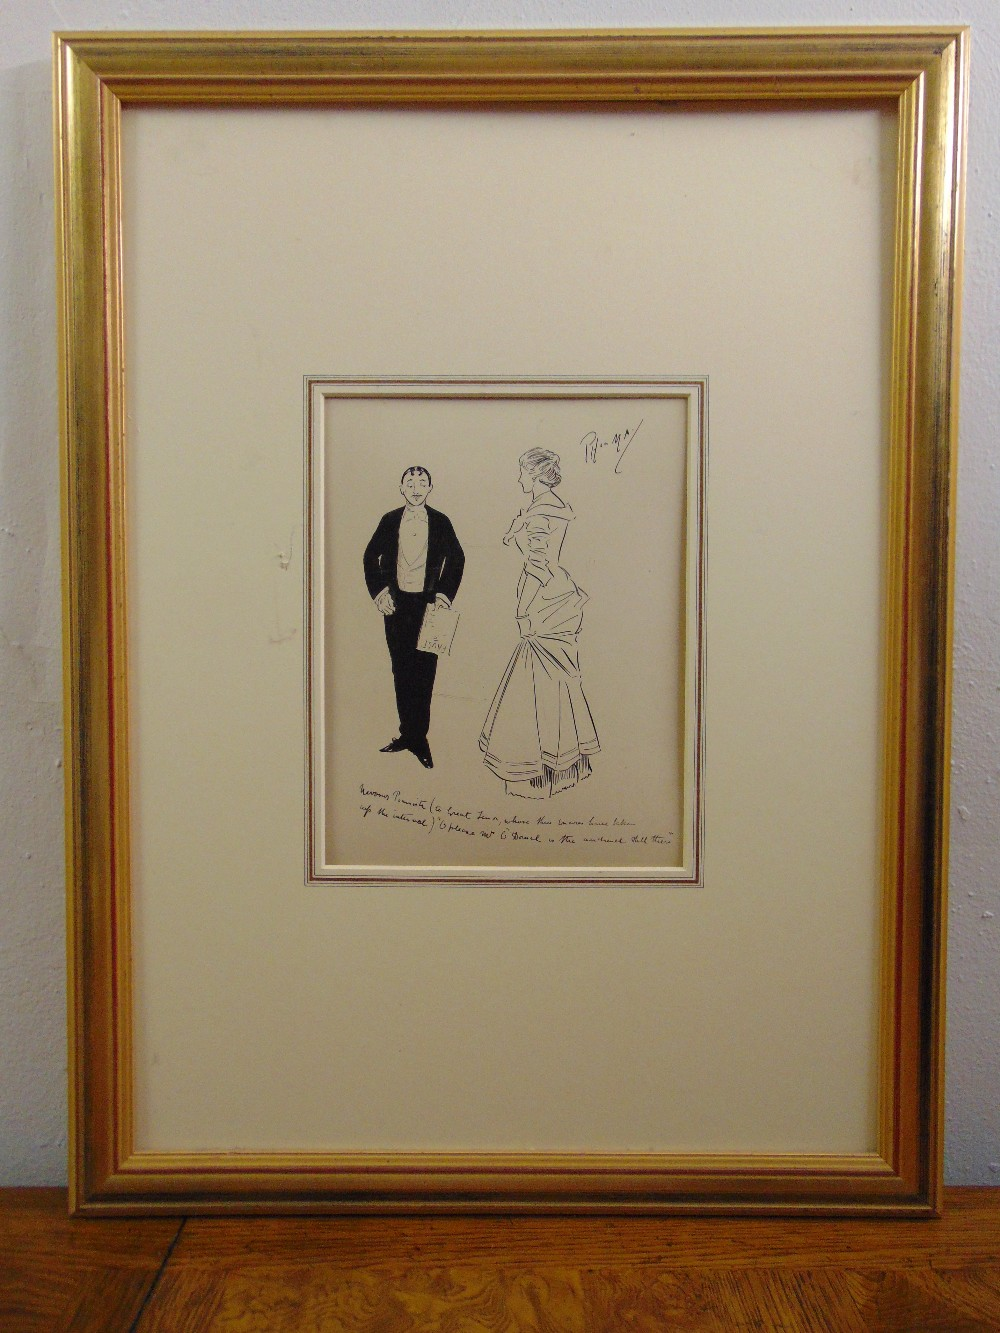 Lot 67 - Philip William May framed pen and ink drawing titled The Nervous Pianist, signed top right,